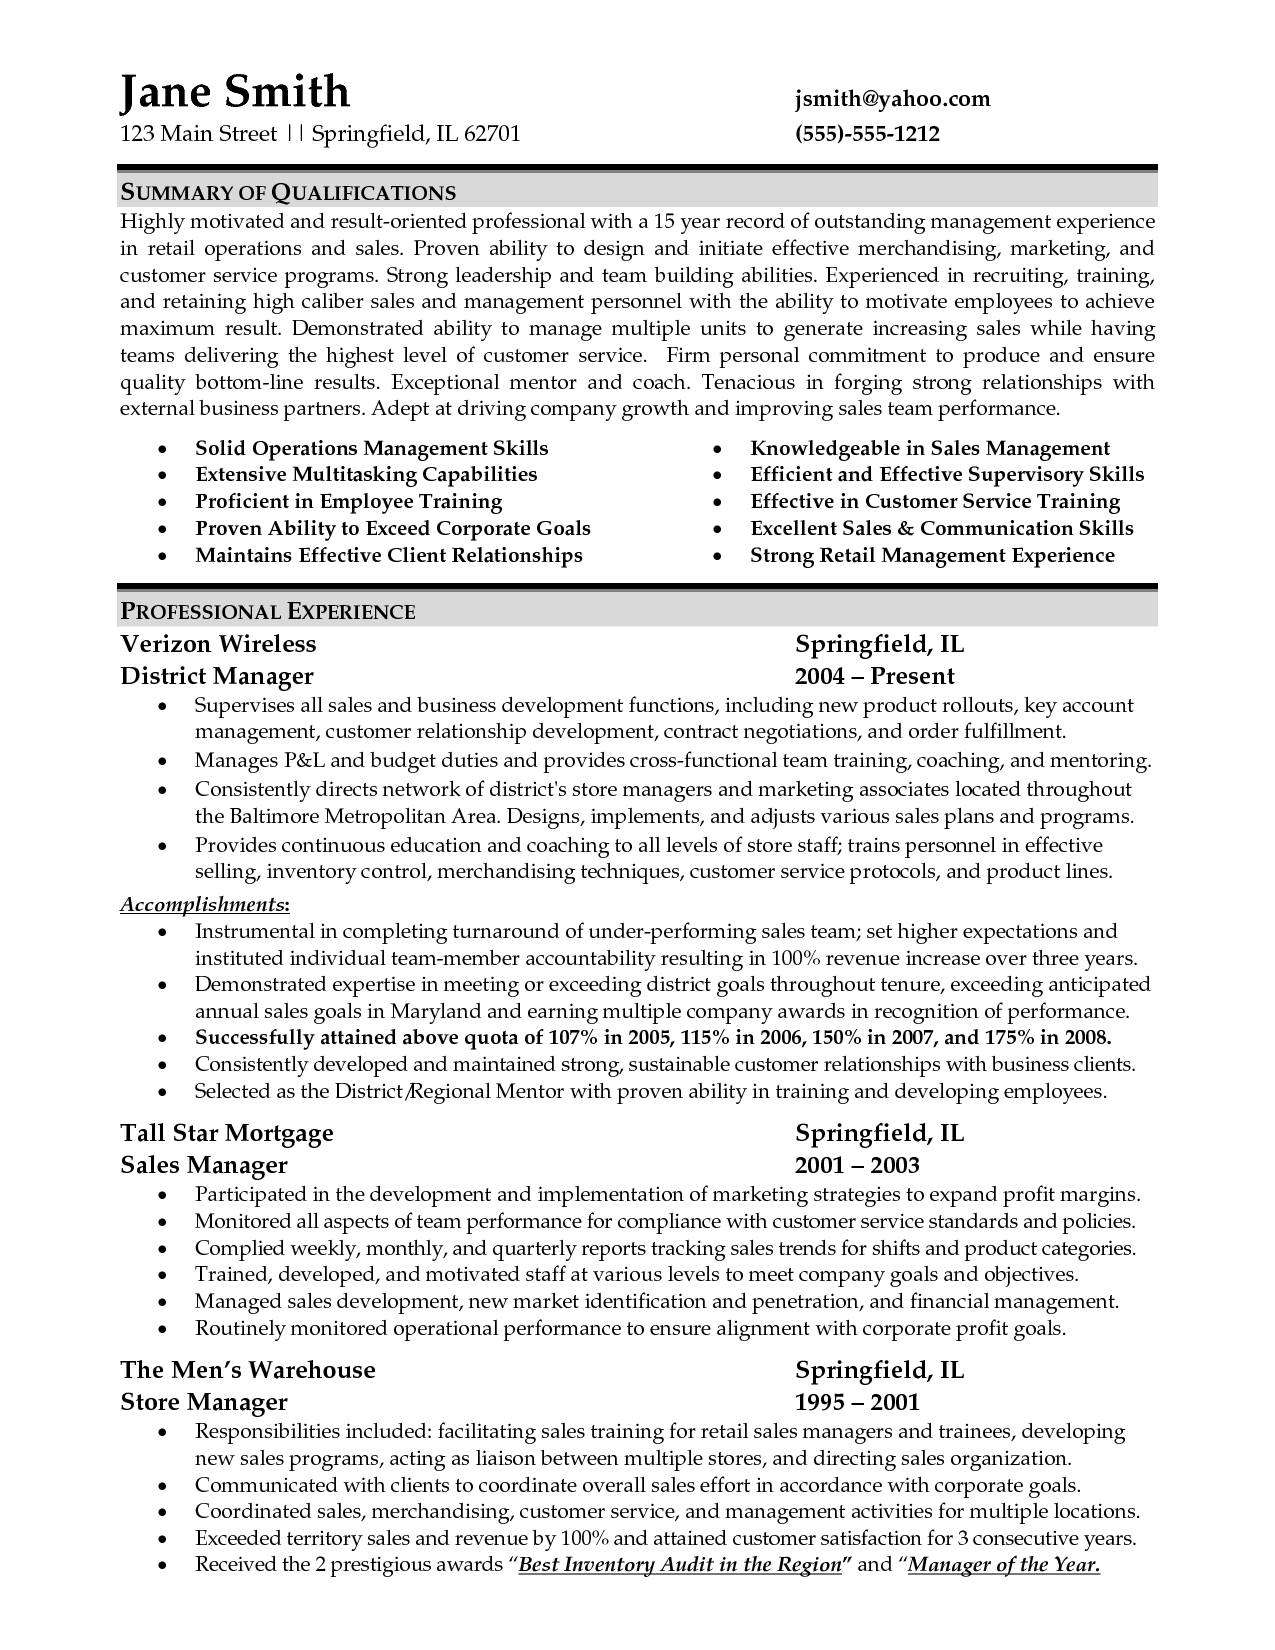 sample resume for retail management job retail store manager